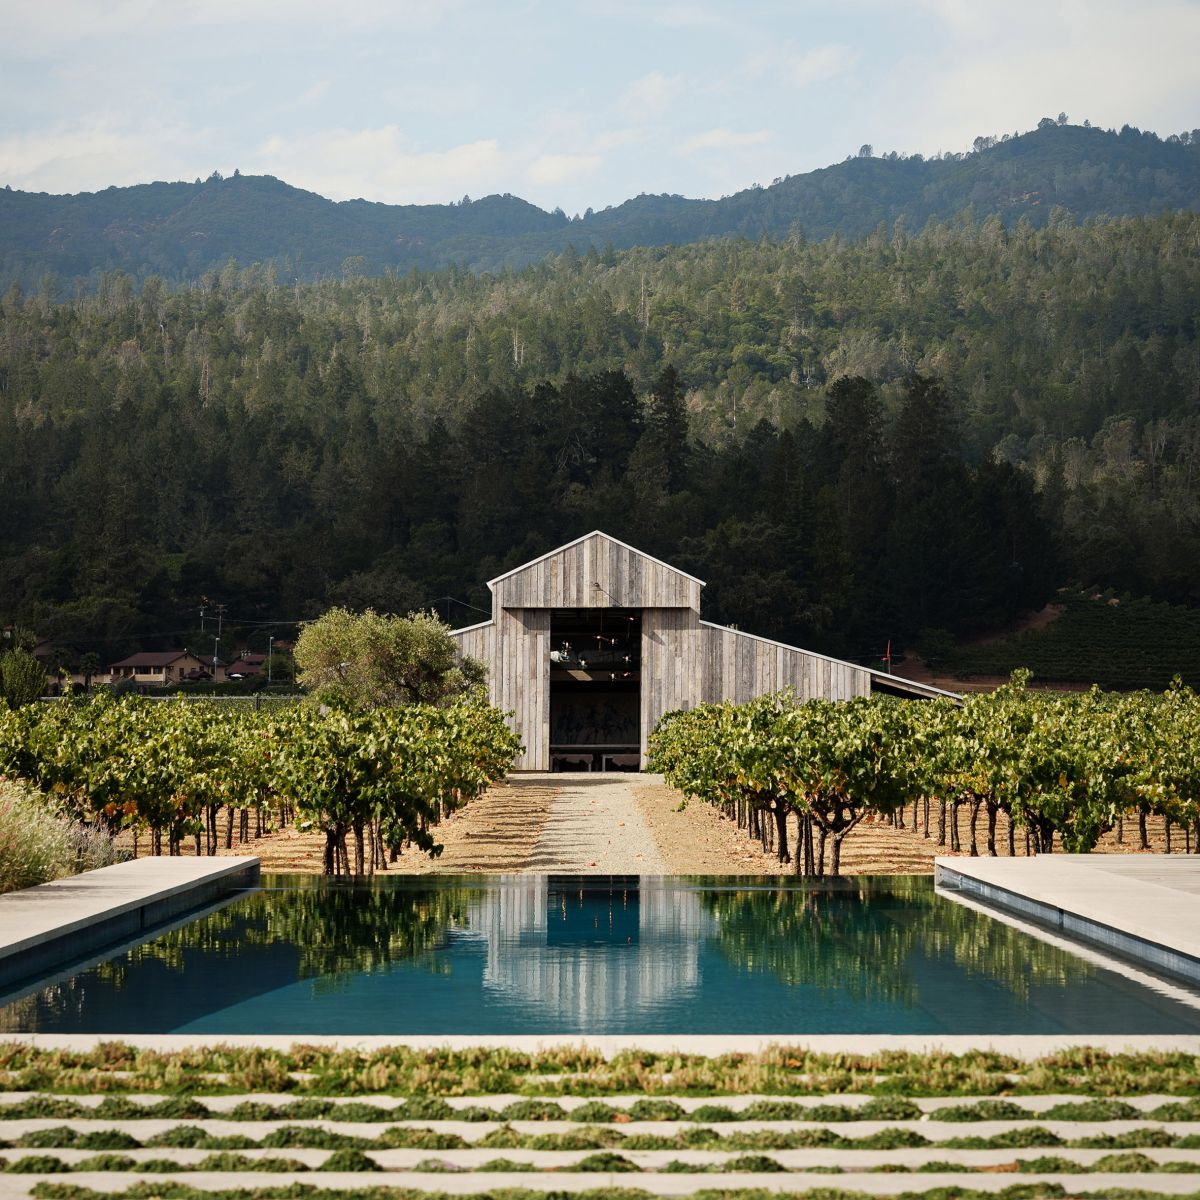 1567764519 768 the unique bond between wine and architecture amazing winery designs - The Unique Bond Between Wine And Architecture – Amazing Winery Designs